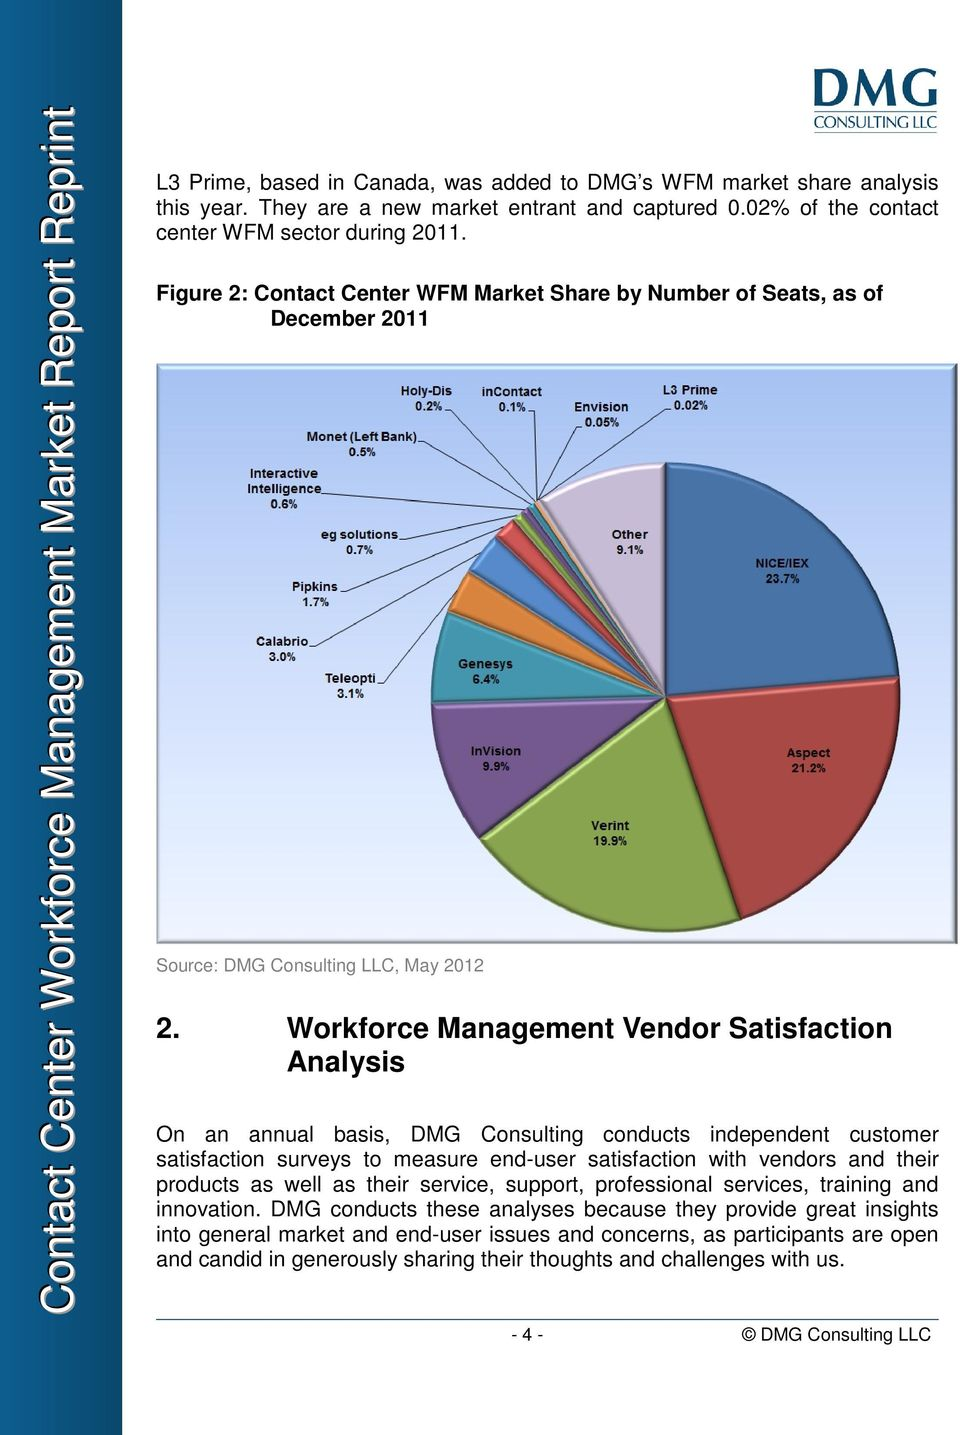 Workforce Management Vendor Satisfaction Analysis On an annual basis, DMG Consulting conducts independent customer satisfaction surveys to measure end-user satisfaction with vendors and their